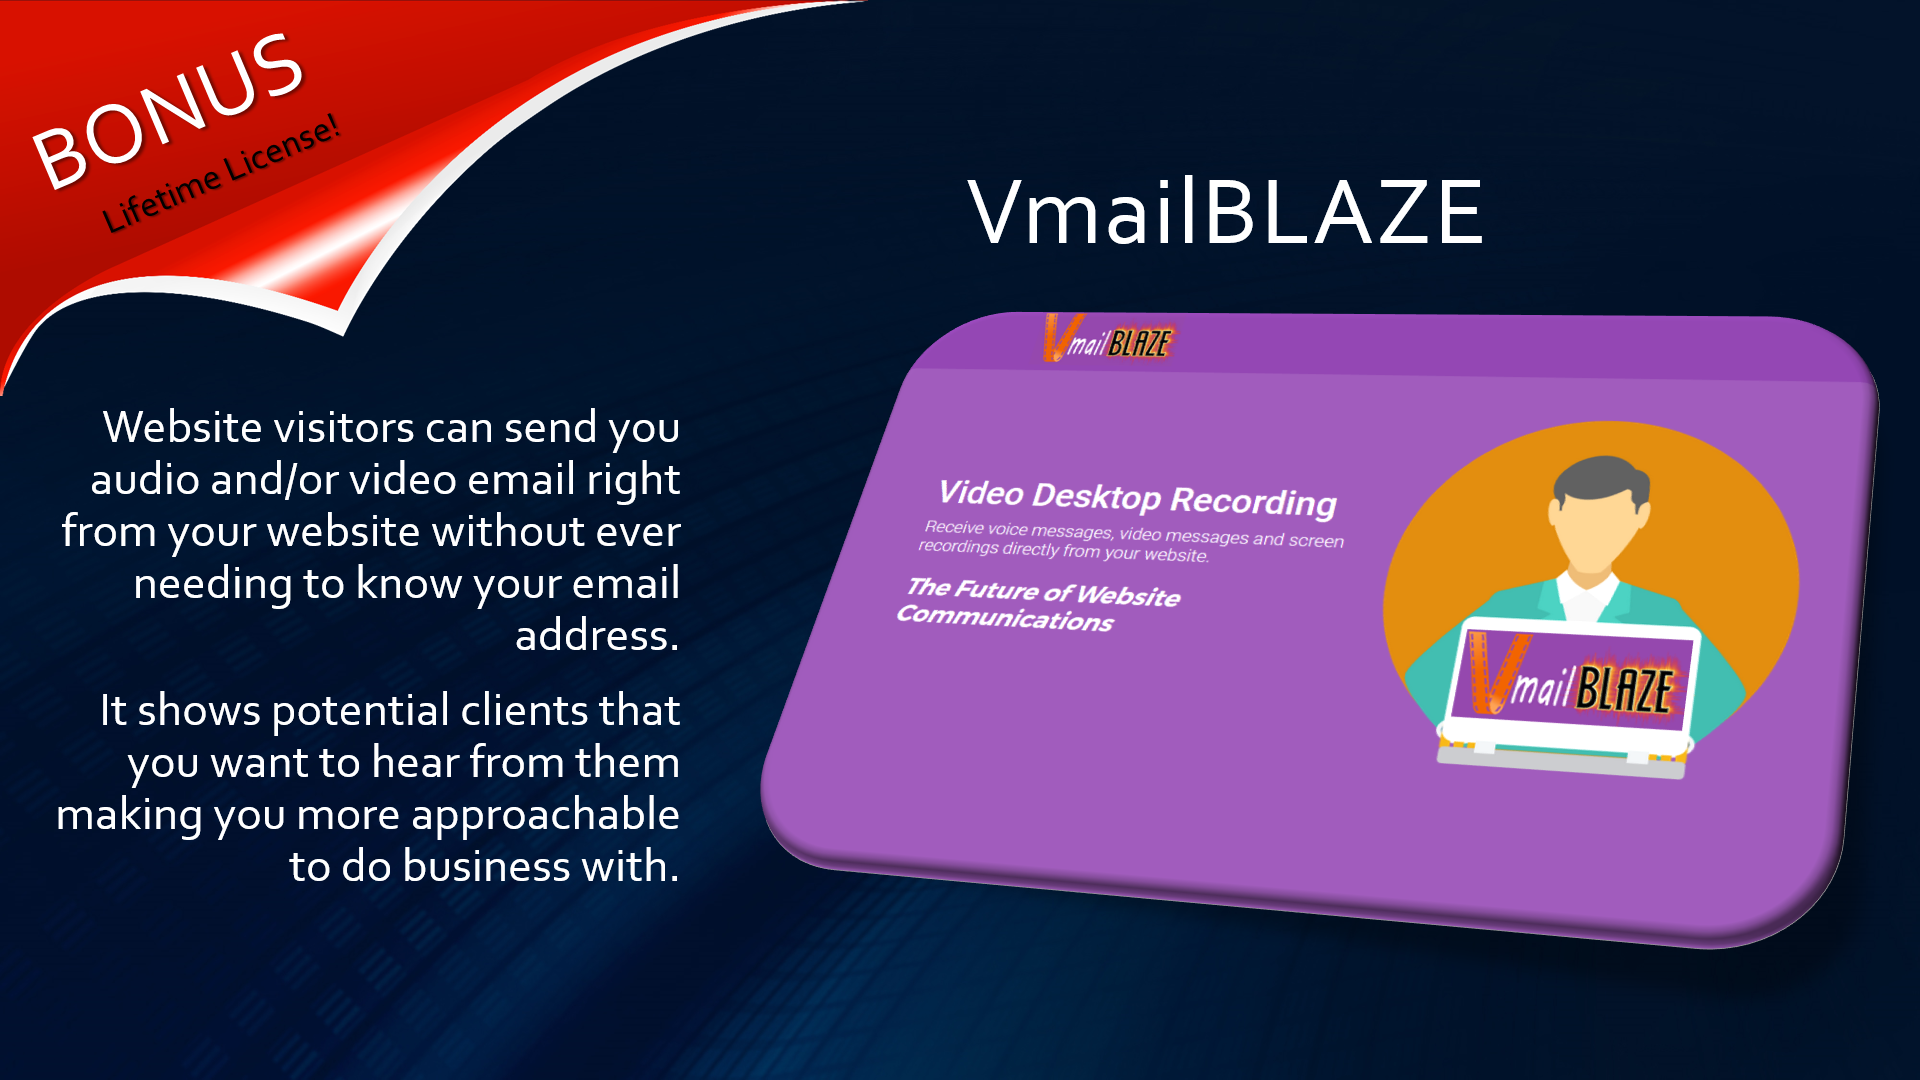 VmailBLAZE lets website visitors send you video email from your website.